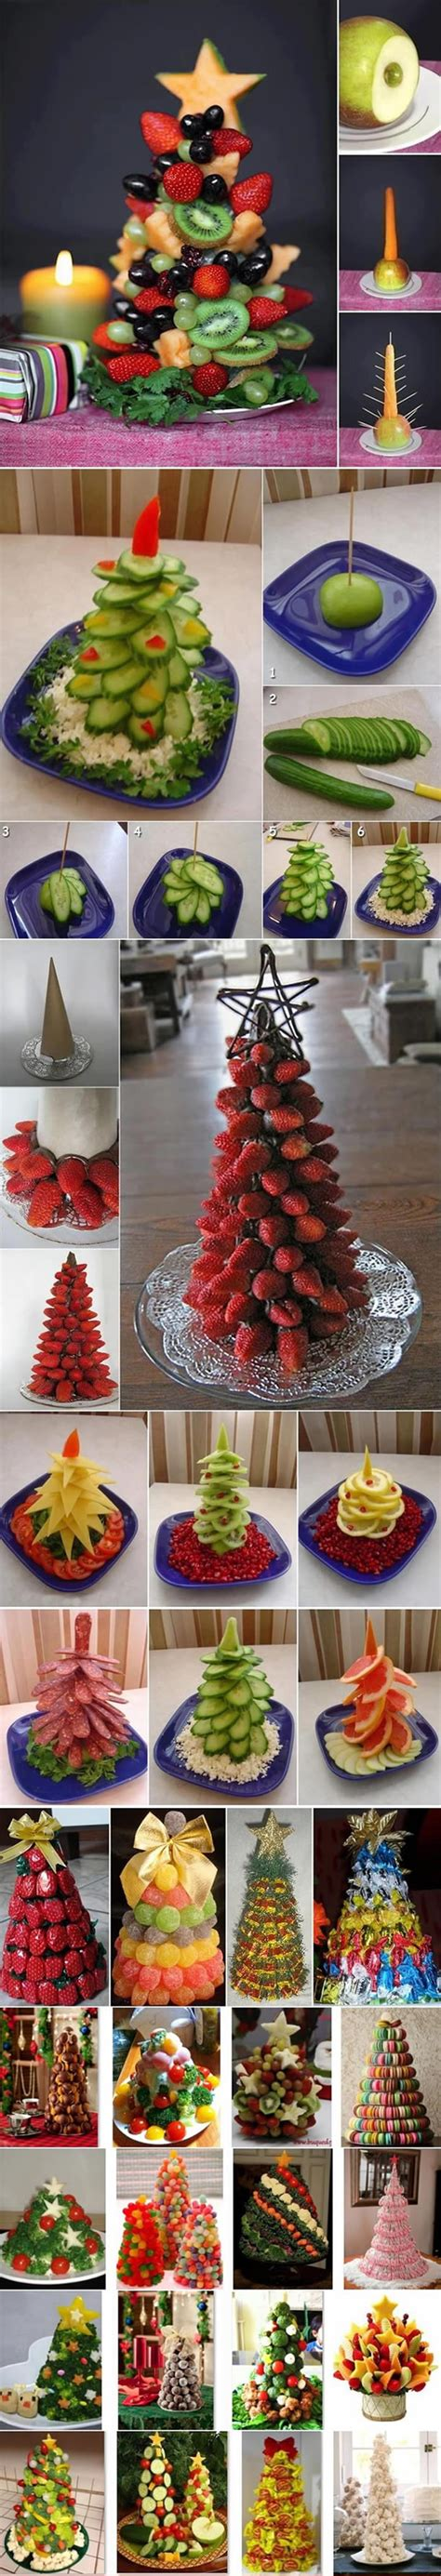 diy food christmas trees pictures photos and images for